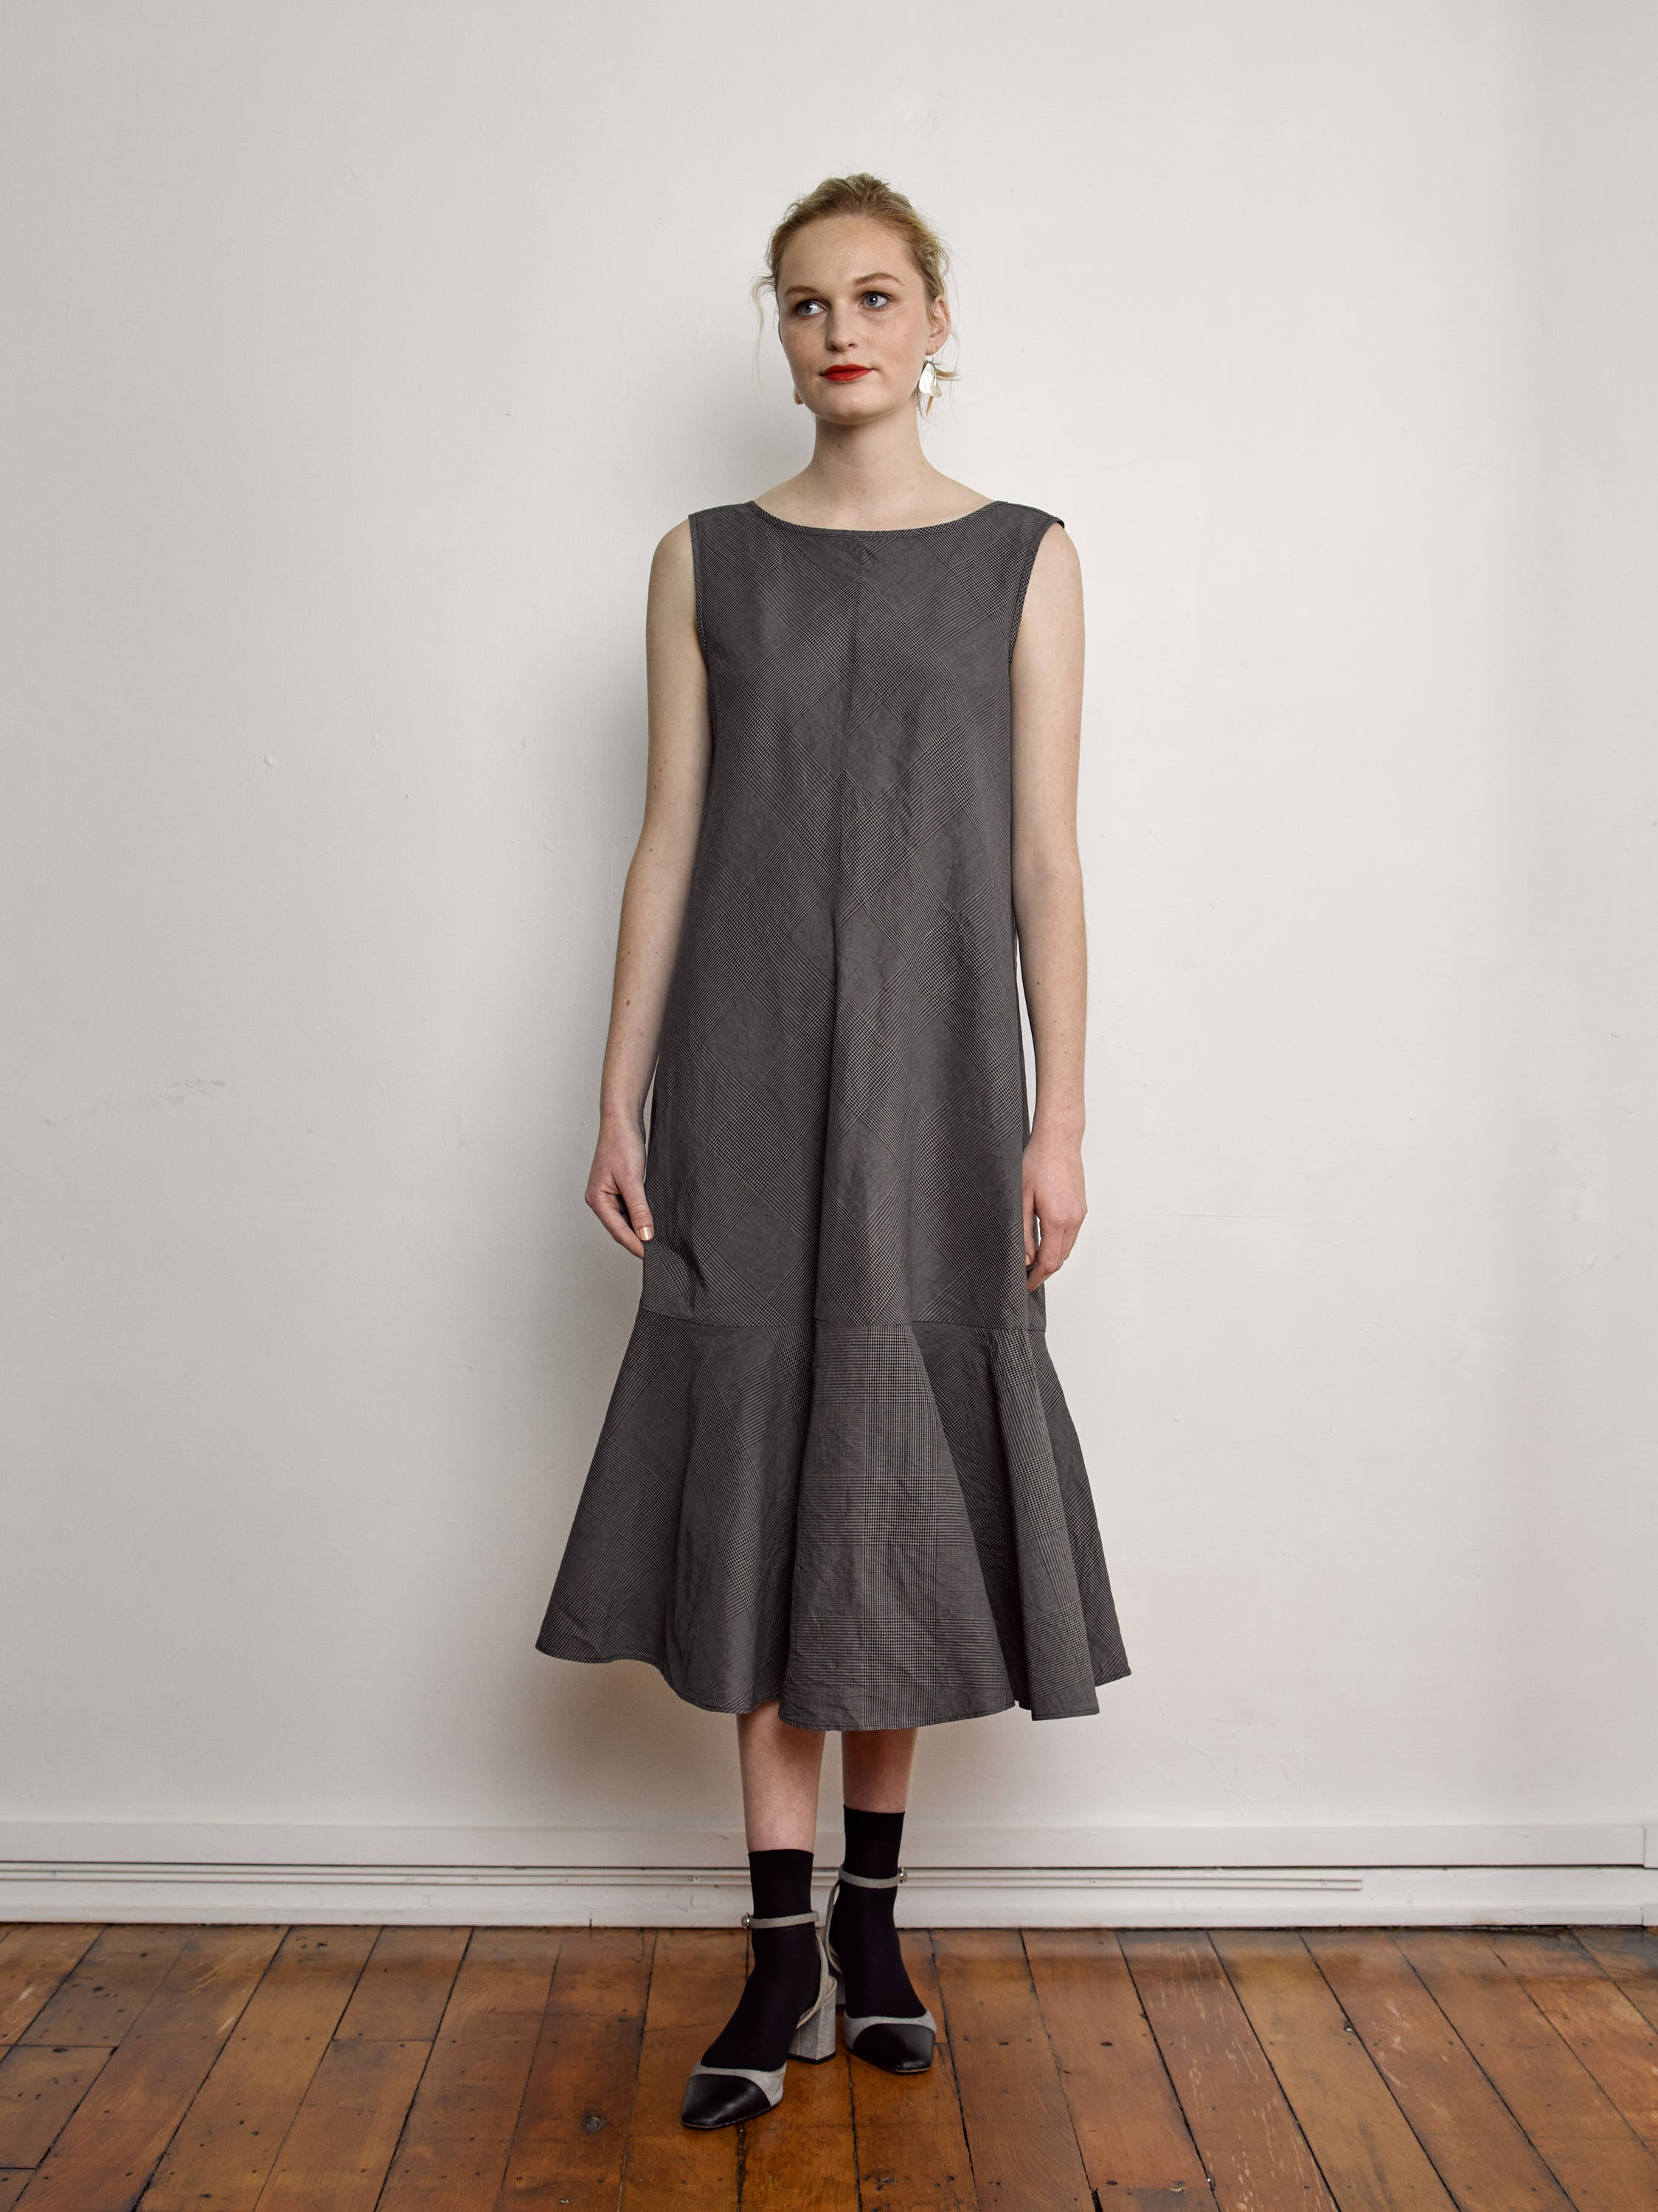 Moniya Dress - Glen Plaid Cotton Linen